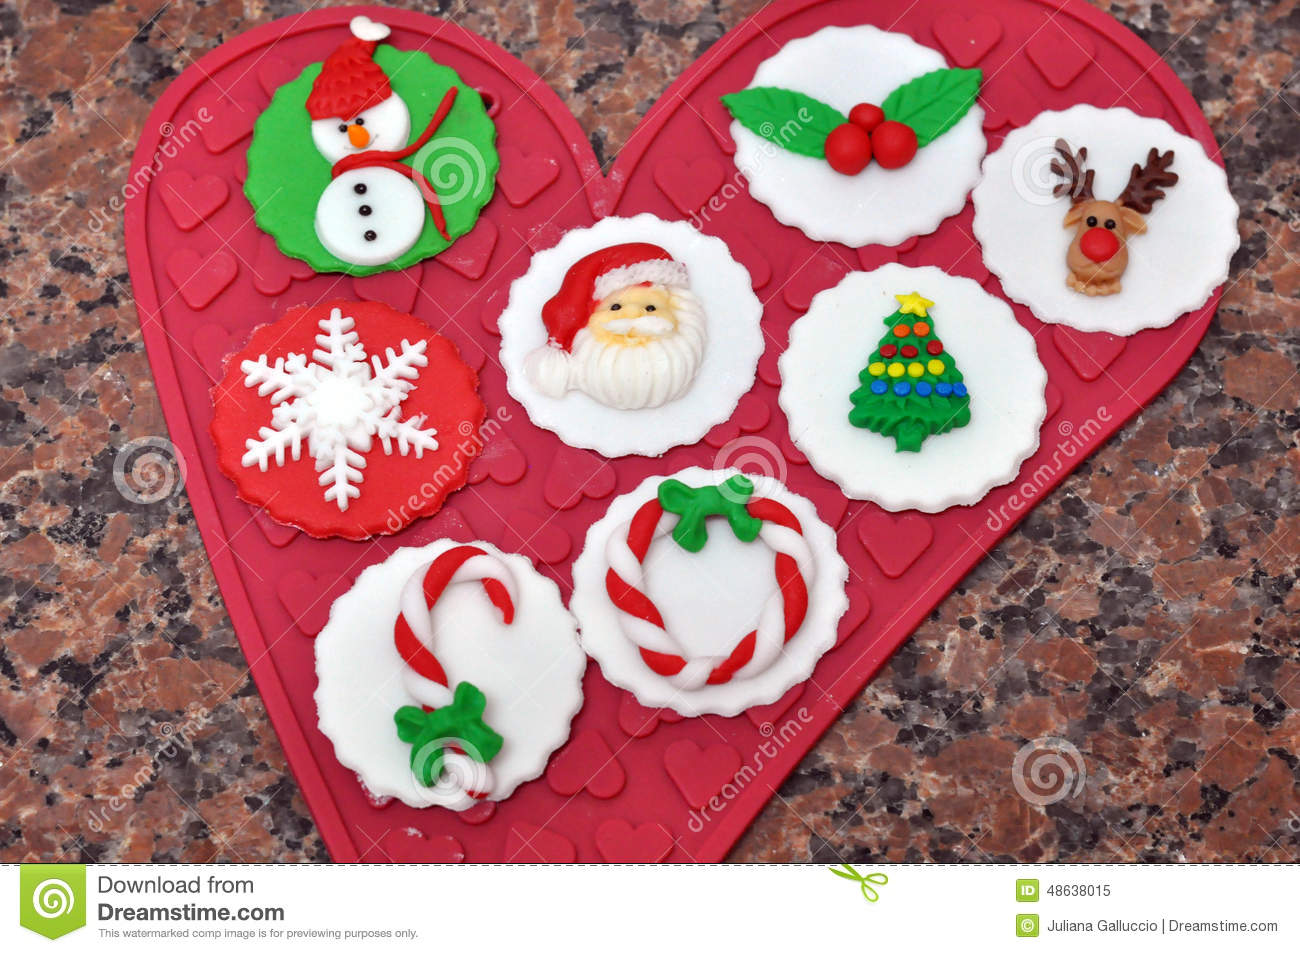 download christmas cupcake decorations stock image image of decoration white 48638015 - Christmas Cupcake Decorations